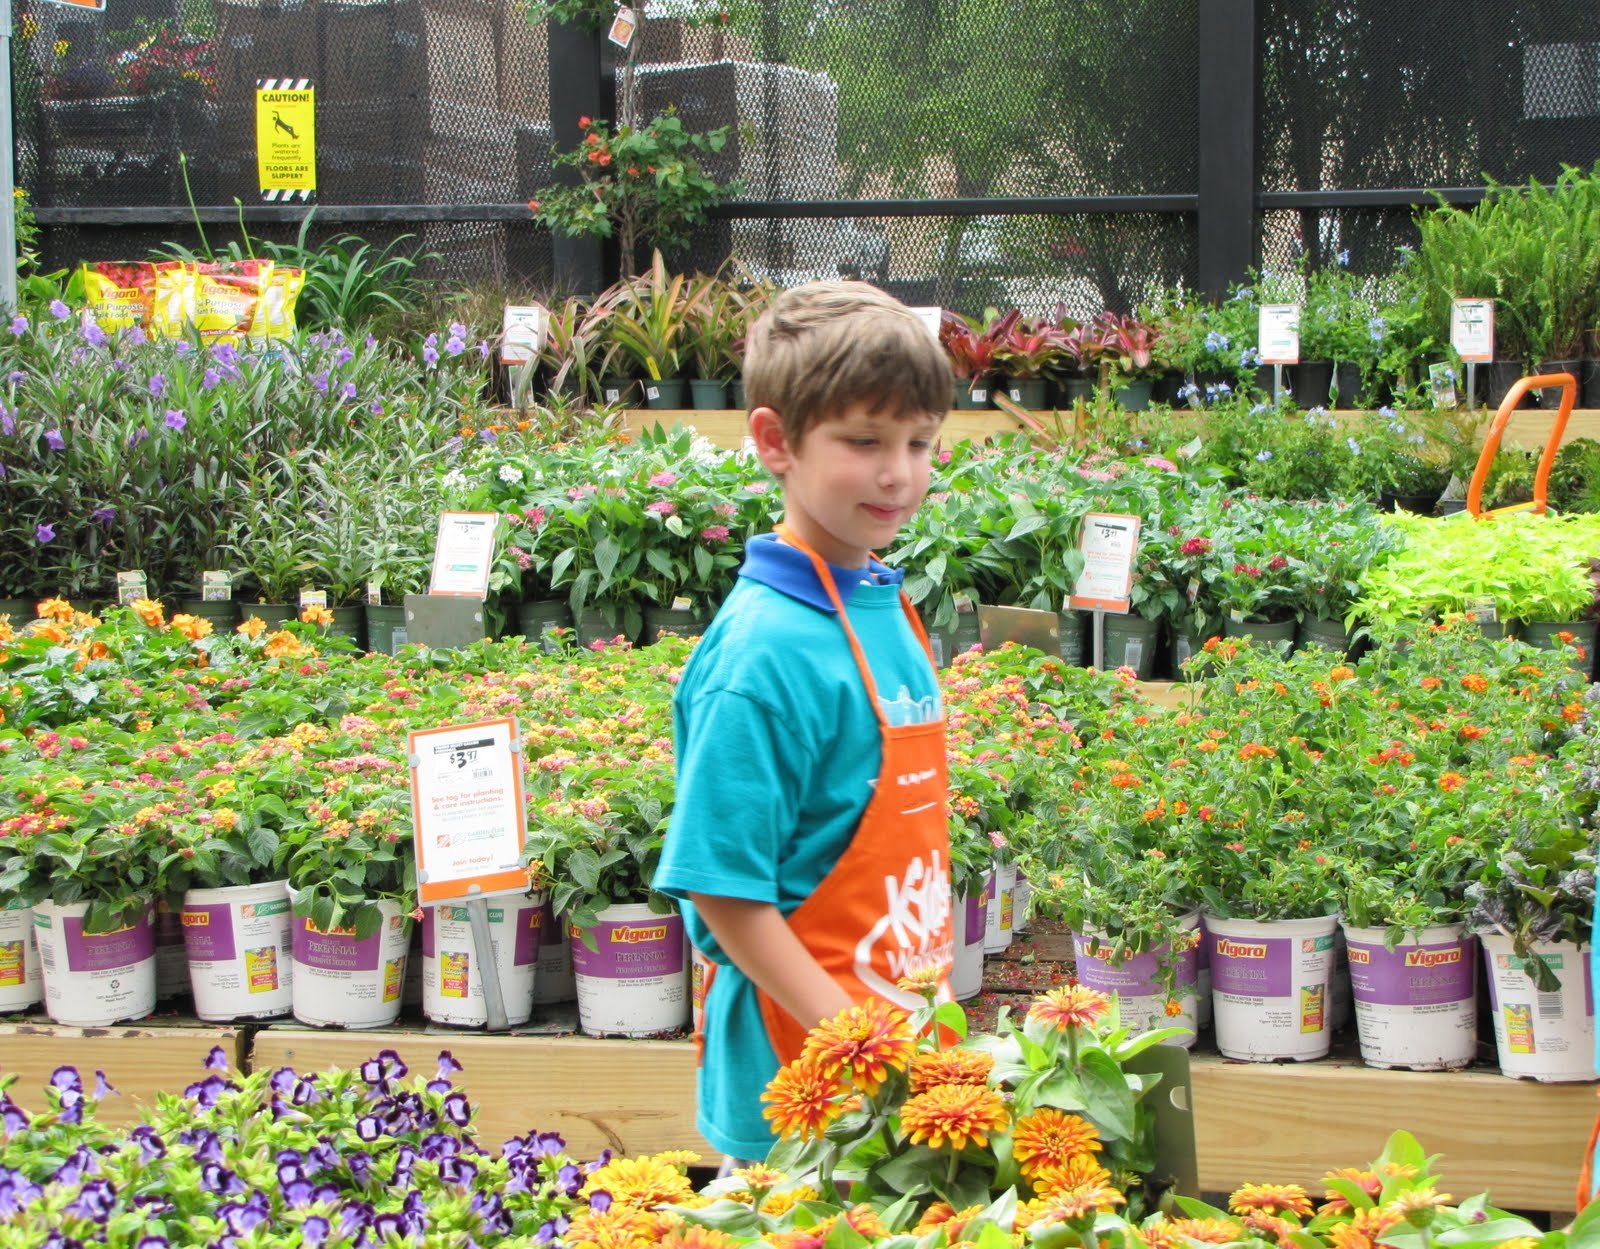 Family American Style Home Depot Class Field Trip